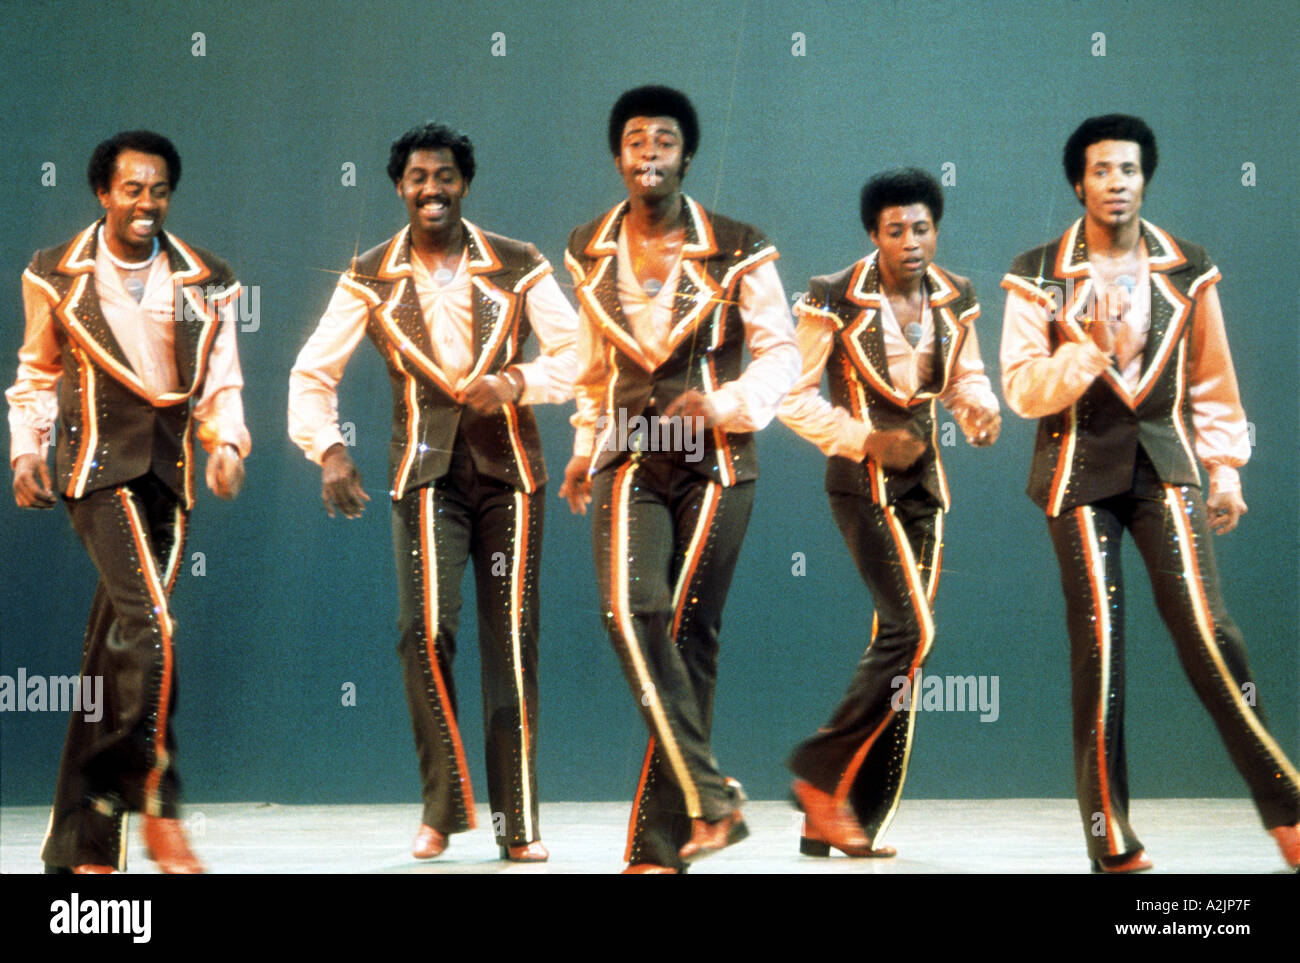 TEMPTATIONS American 70s Soul group - Stock Image